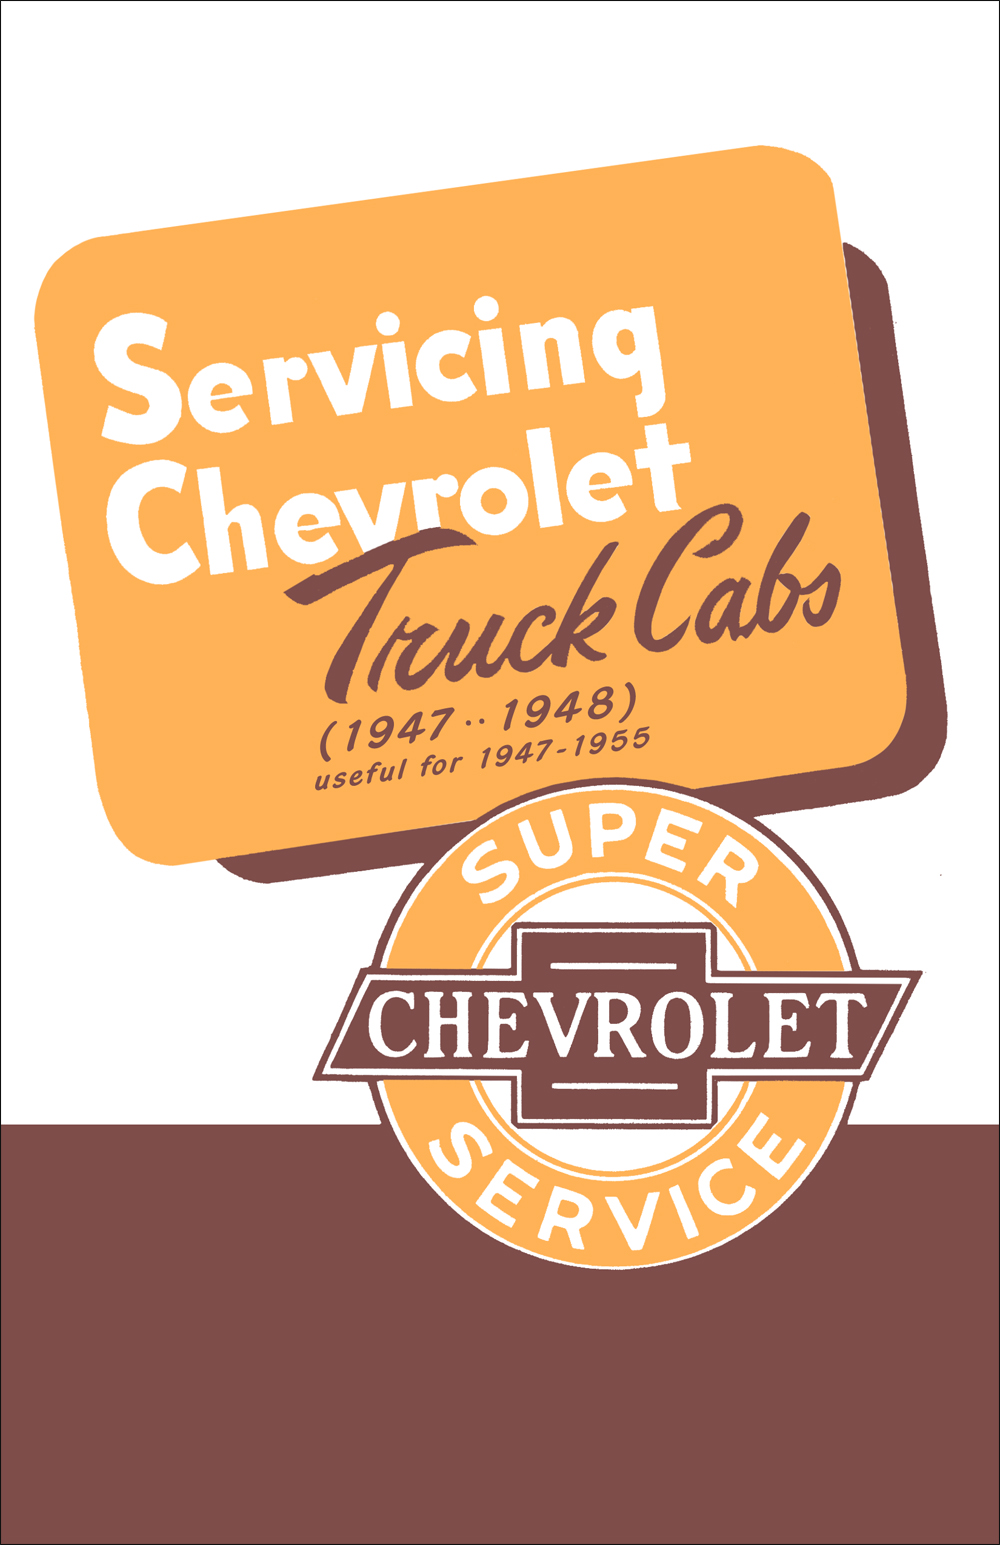 1947-1948 Chevrolet Truck Cab Service Manual for 1947-1955 Series I